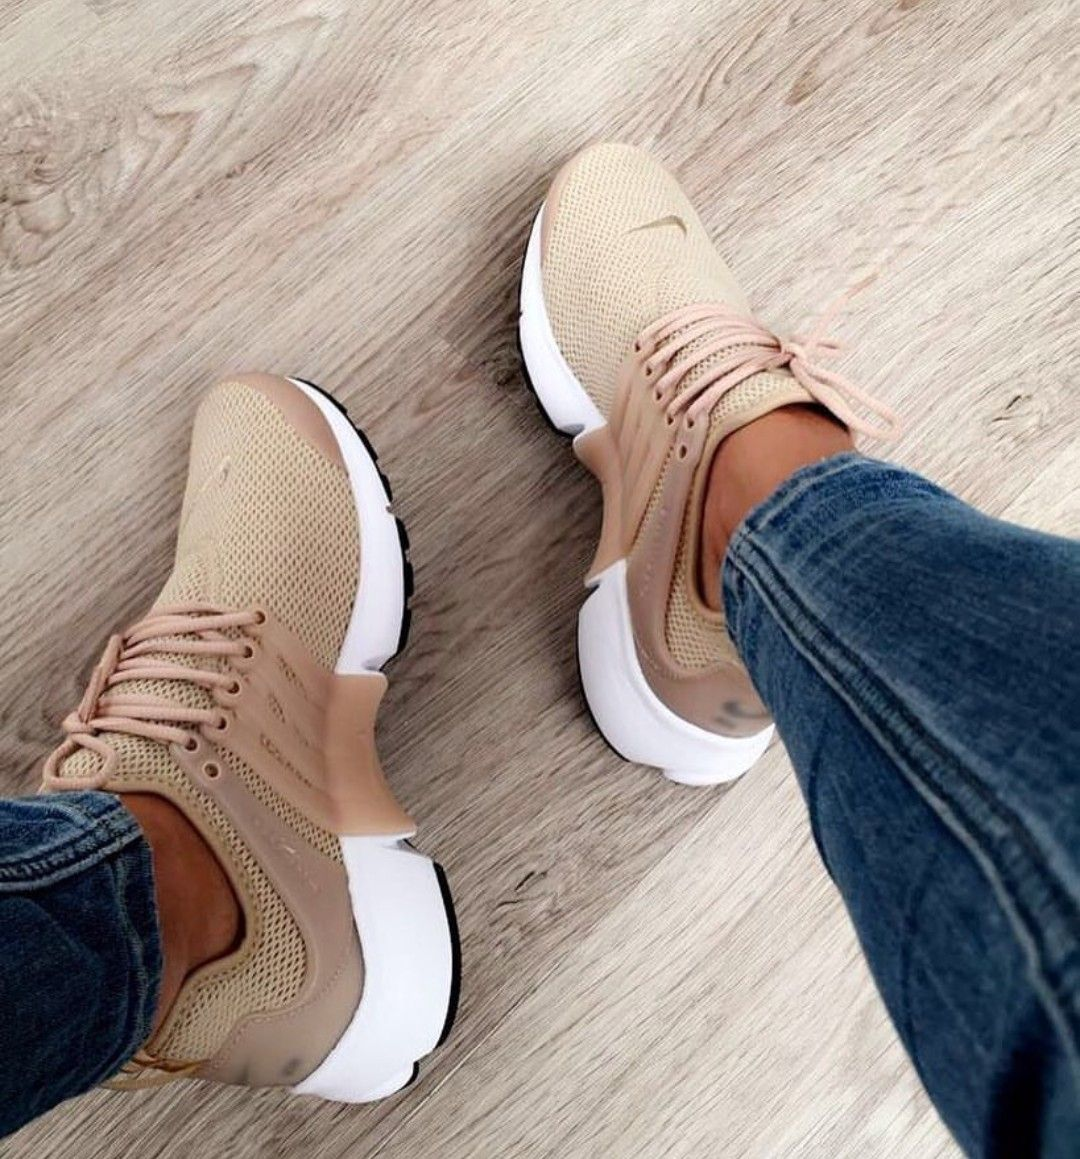 Nike Air Presto in braun-beige/brown-creme // Foto ...